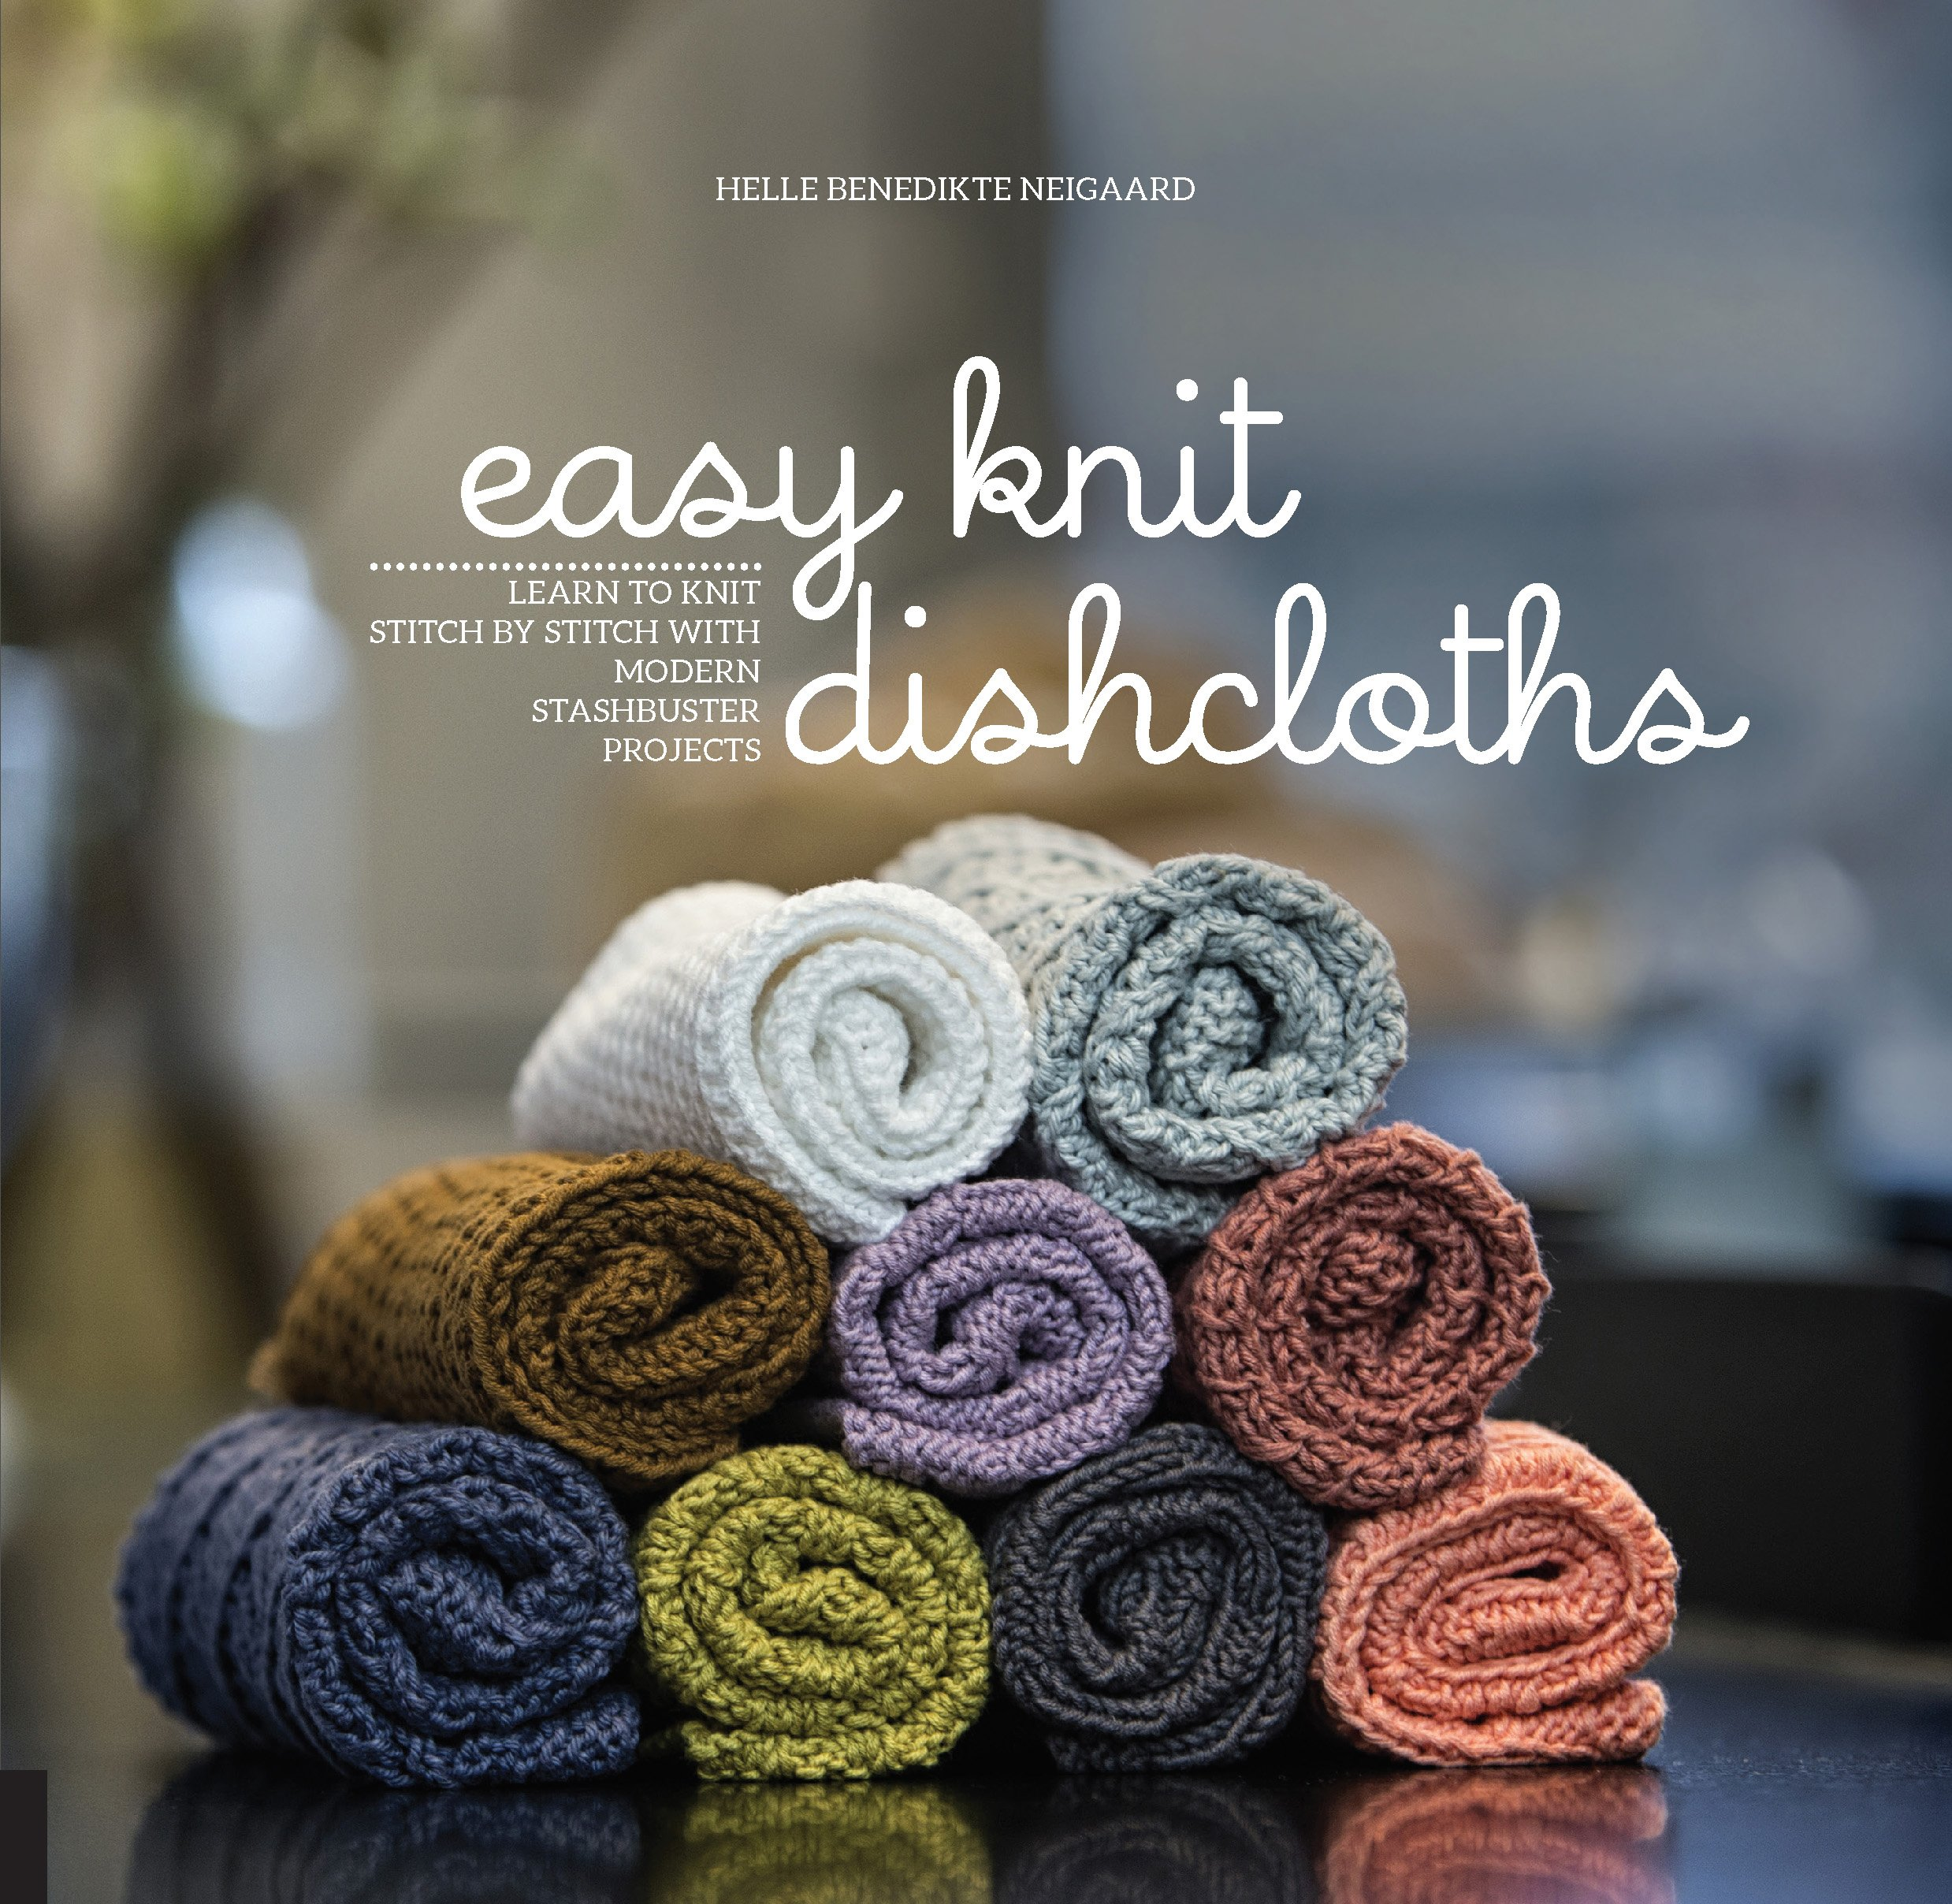 Easy Knit Dishcloths: Learn to Knit Stitch by Stitch with Modern Stashbuster Projects by imusti (Image #1)